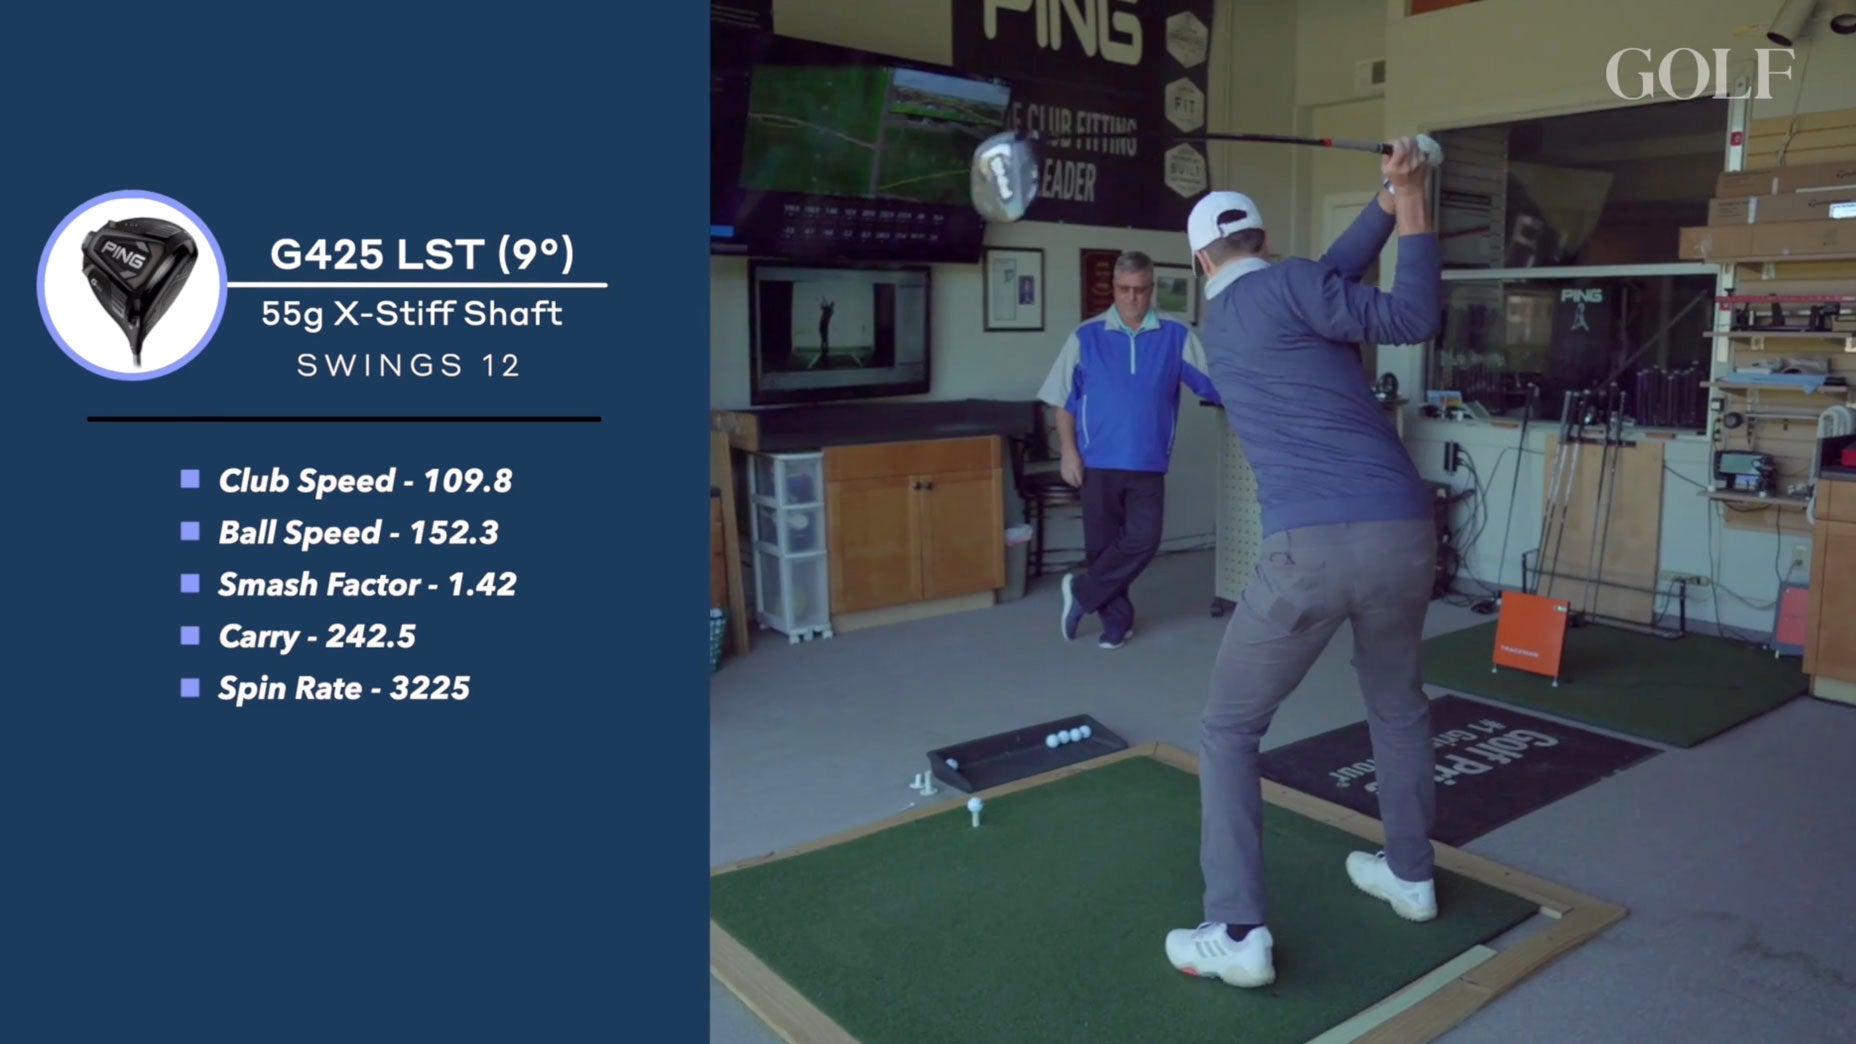 ping driver fitting